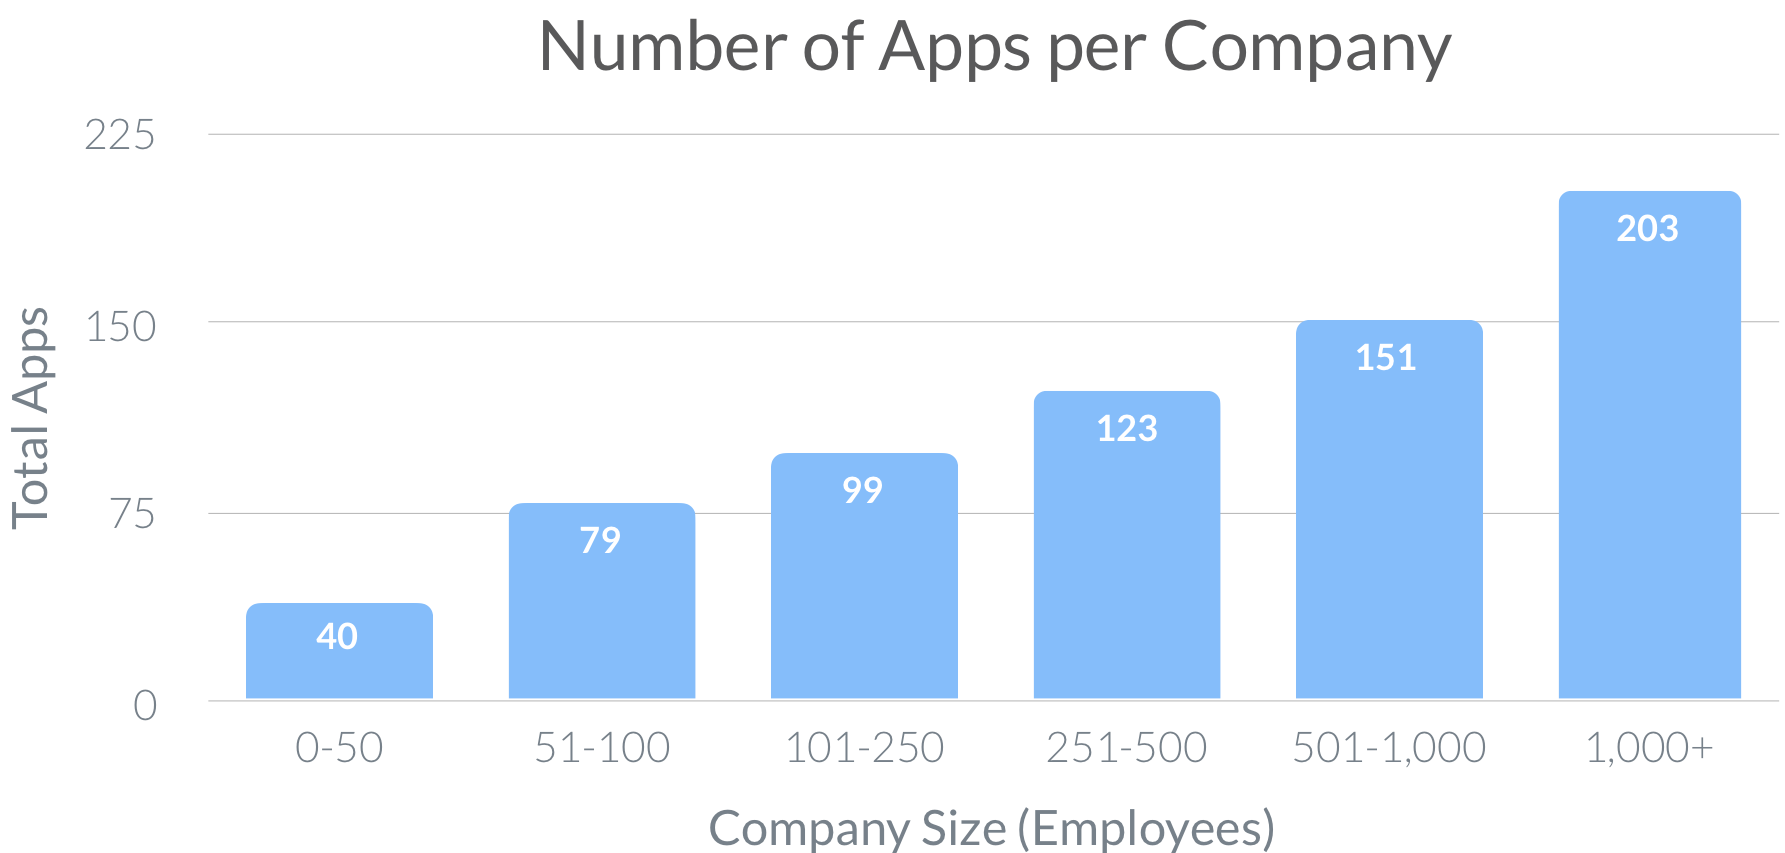 Number-of-Apps-per-Company